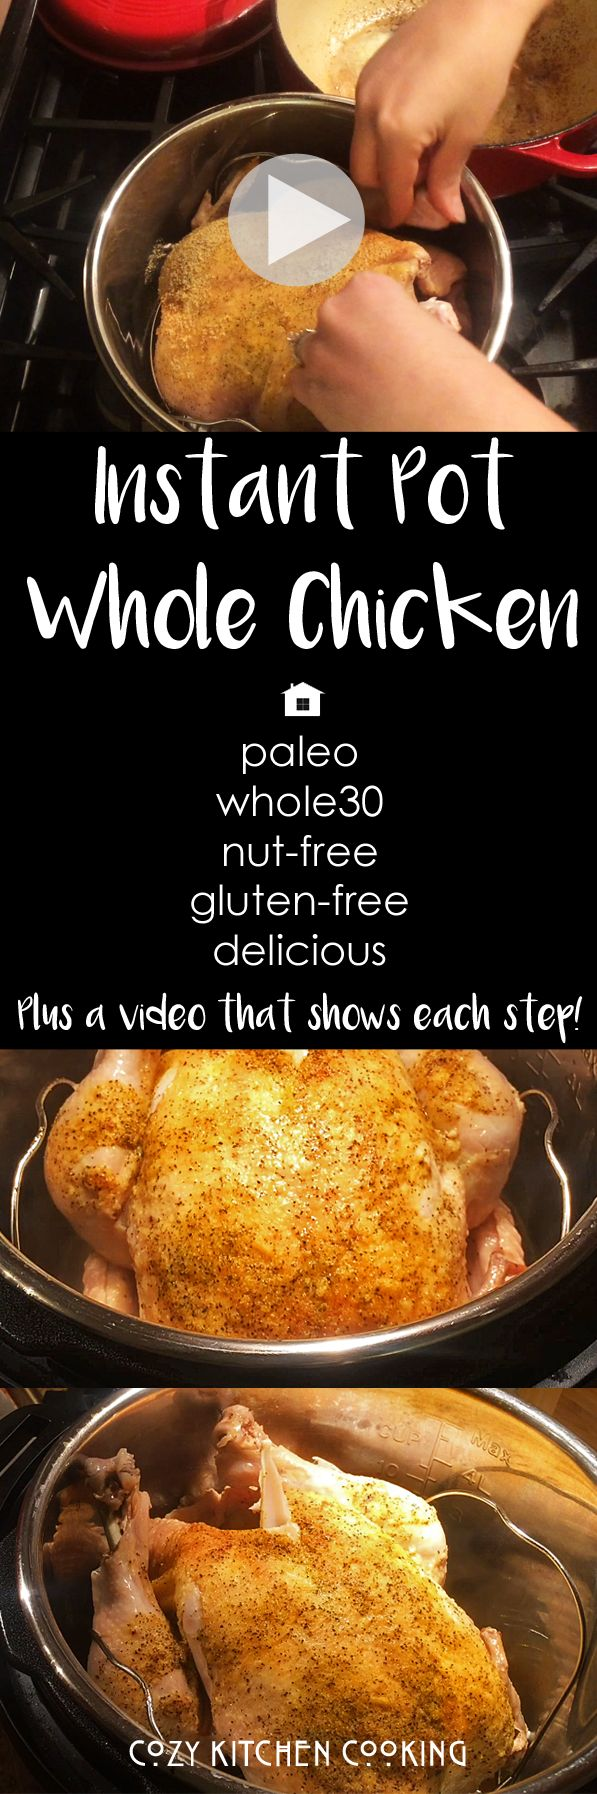 How To Video: Instant Pot Whole Chicken In This Video And Recipe, I